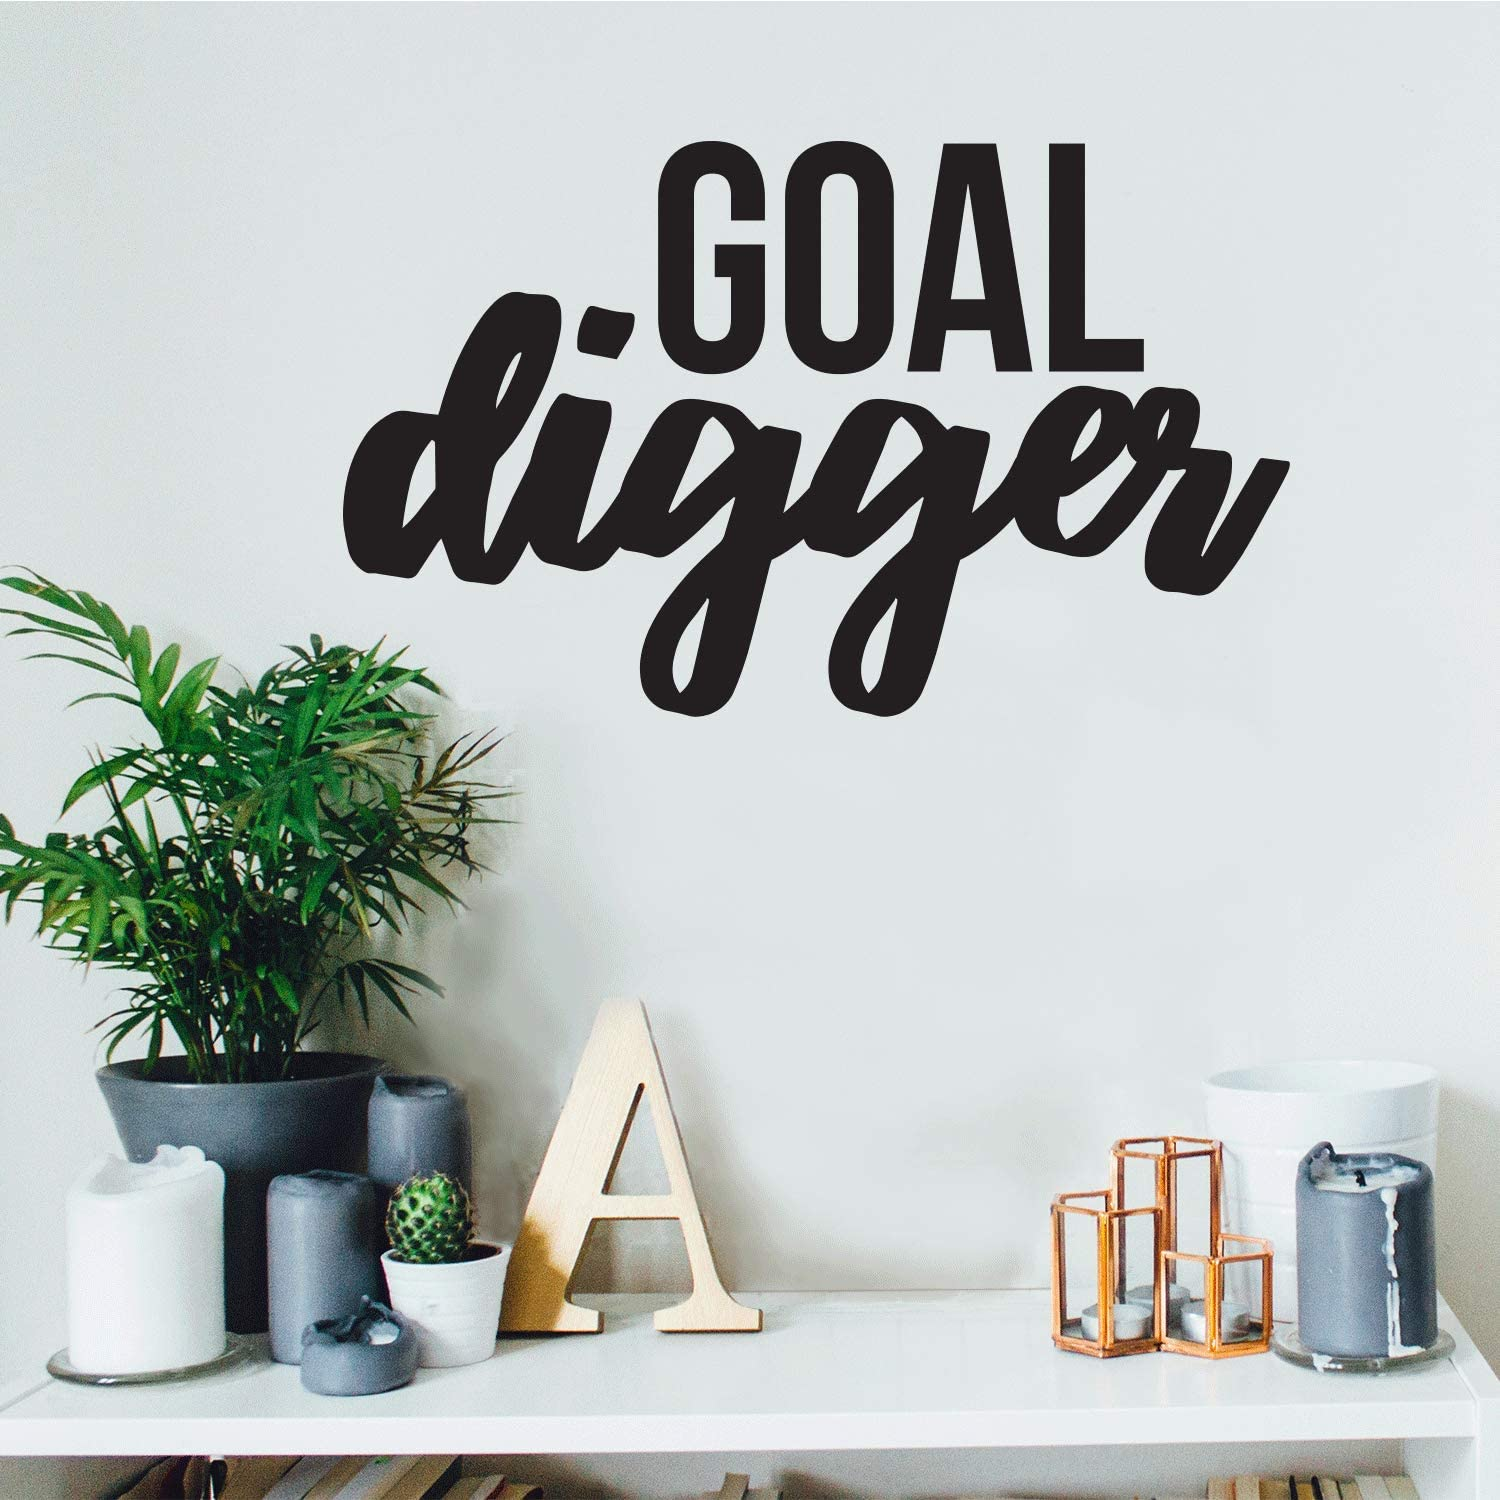 Goal Digger Inspirational Women's Quotes - Wall Art Decal 13